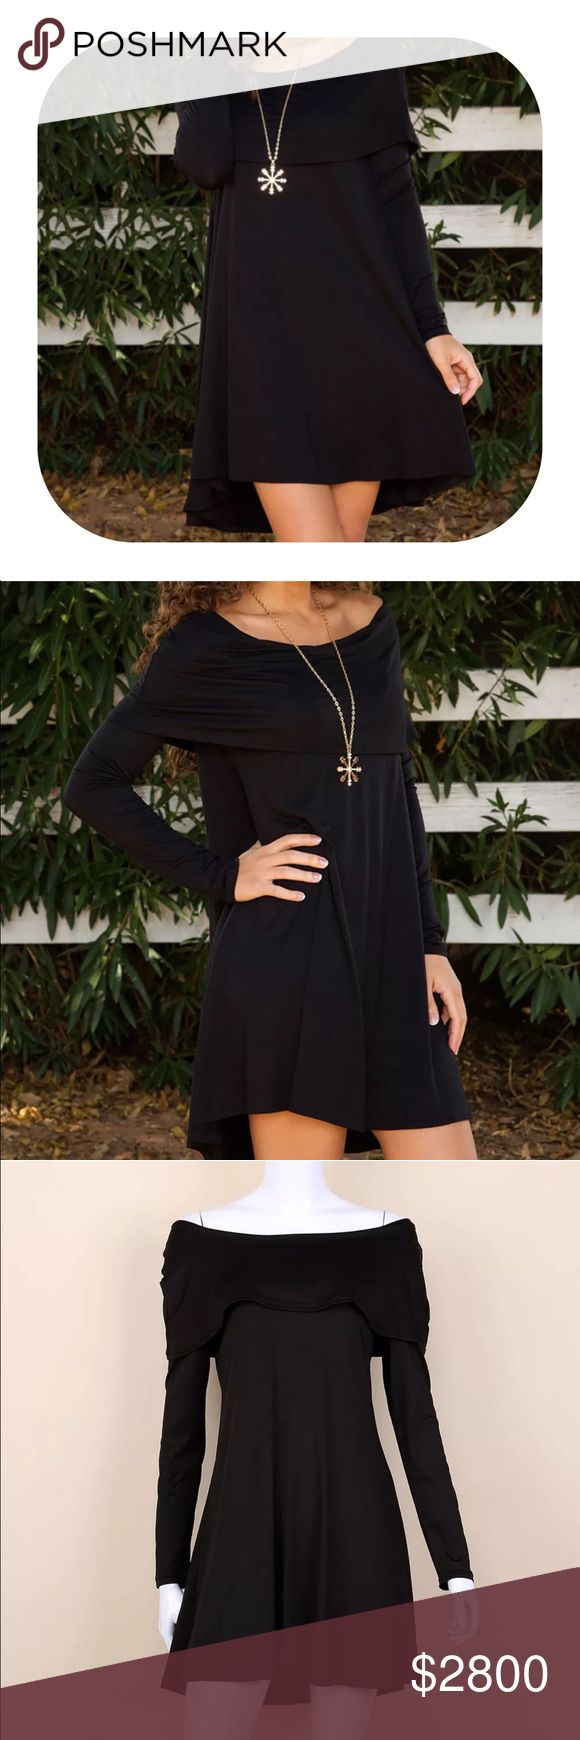 shoulder fold dress Material: milk wire.                                        Brand new with tag.                                                 Bundle discount 15%.                                              If you want more than two items let me know, I can make you a list with more discount. Dresses Midi